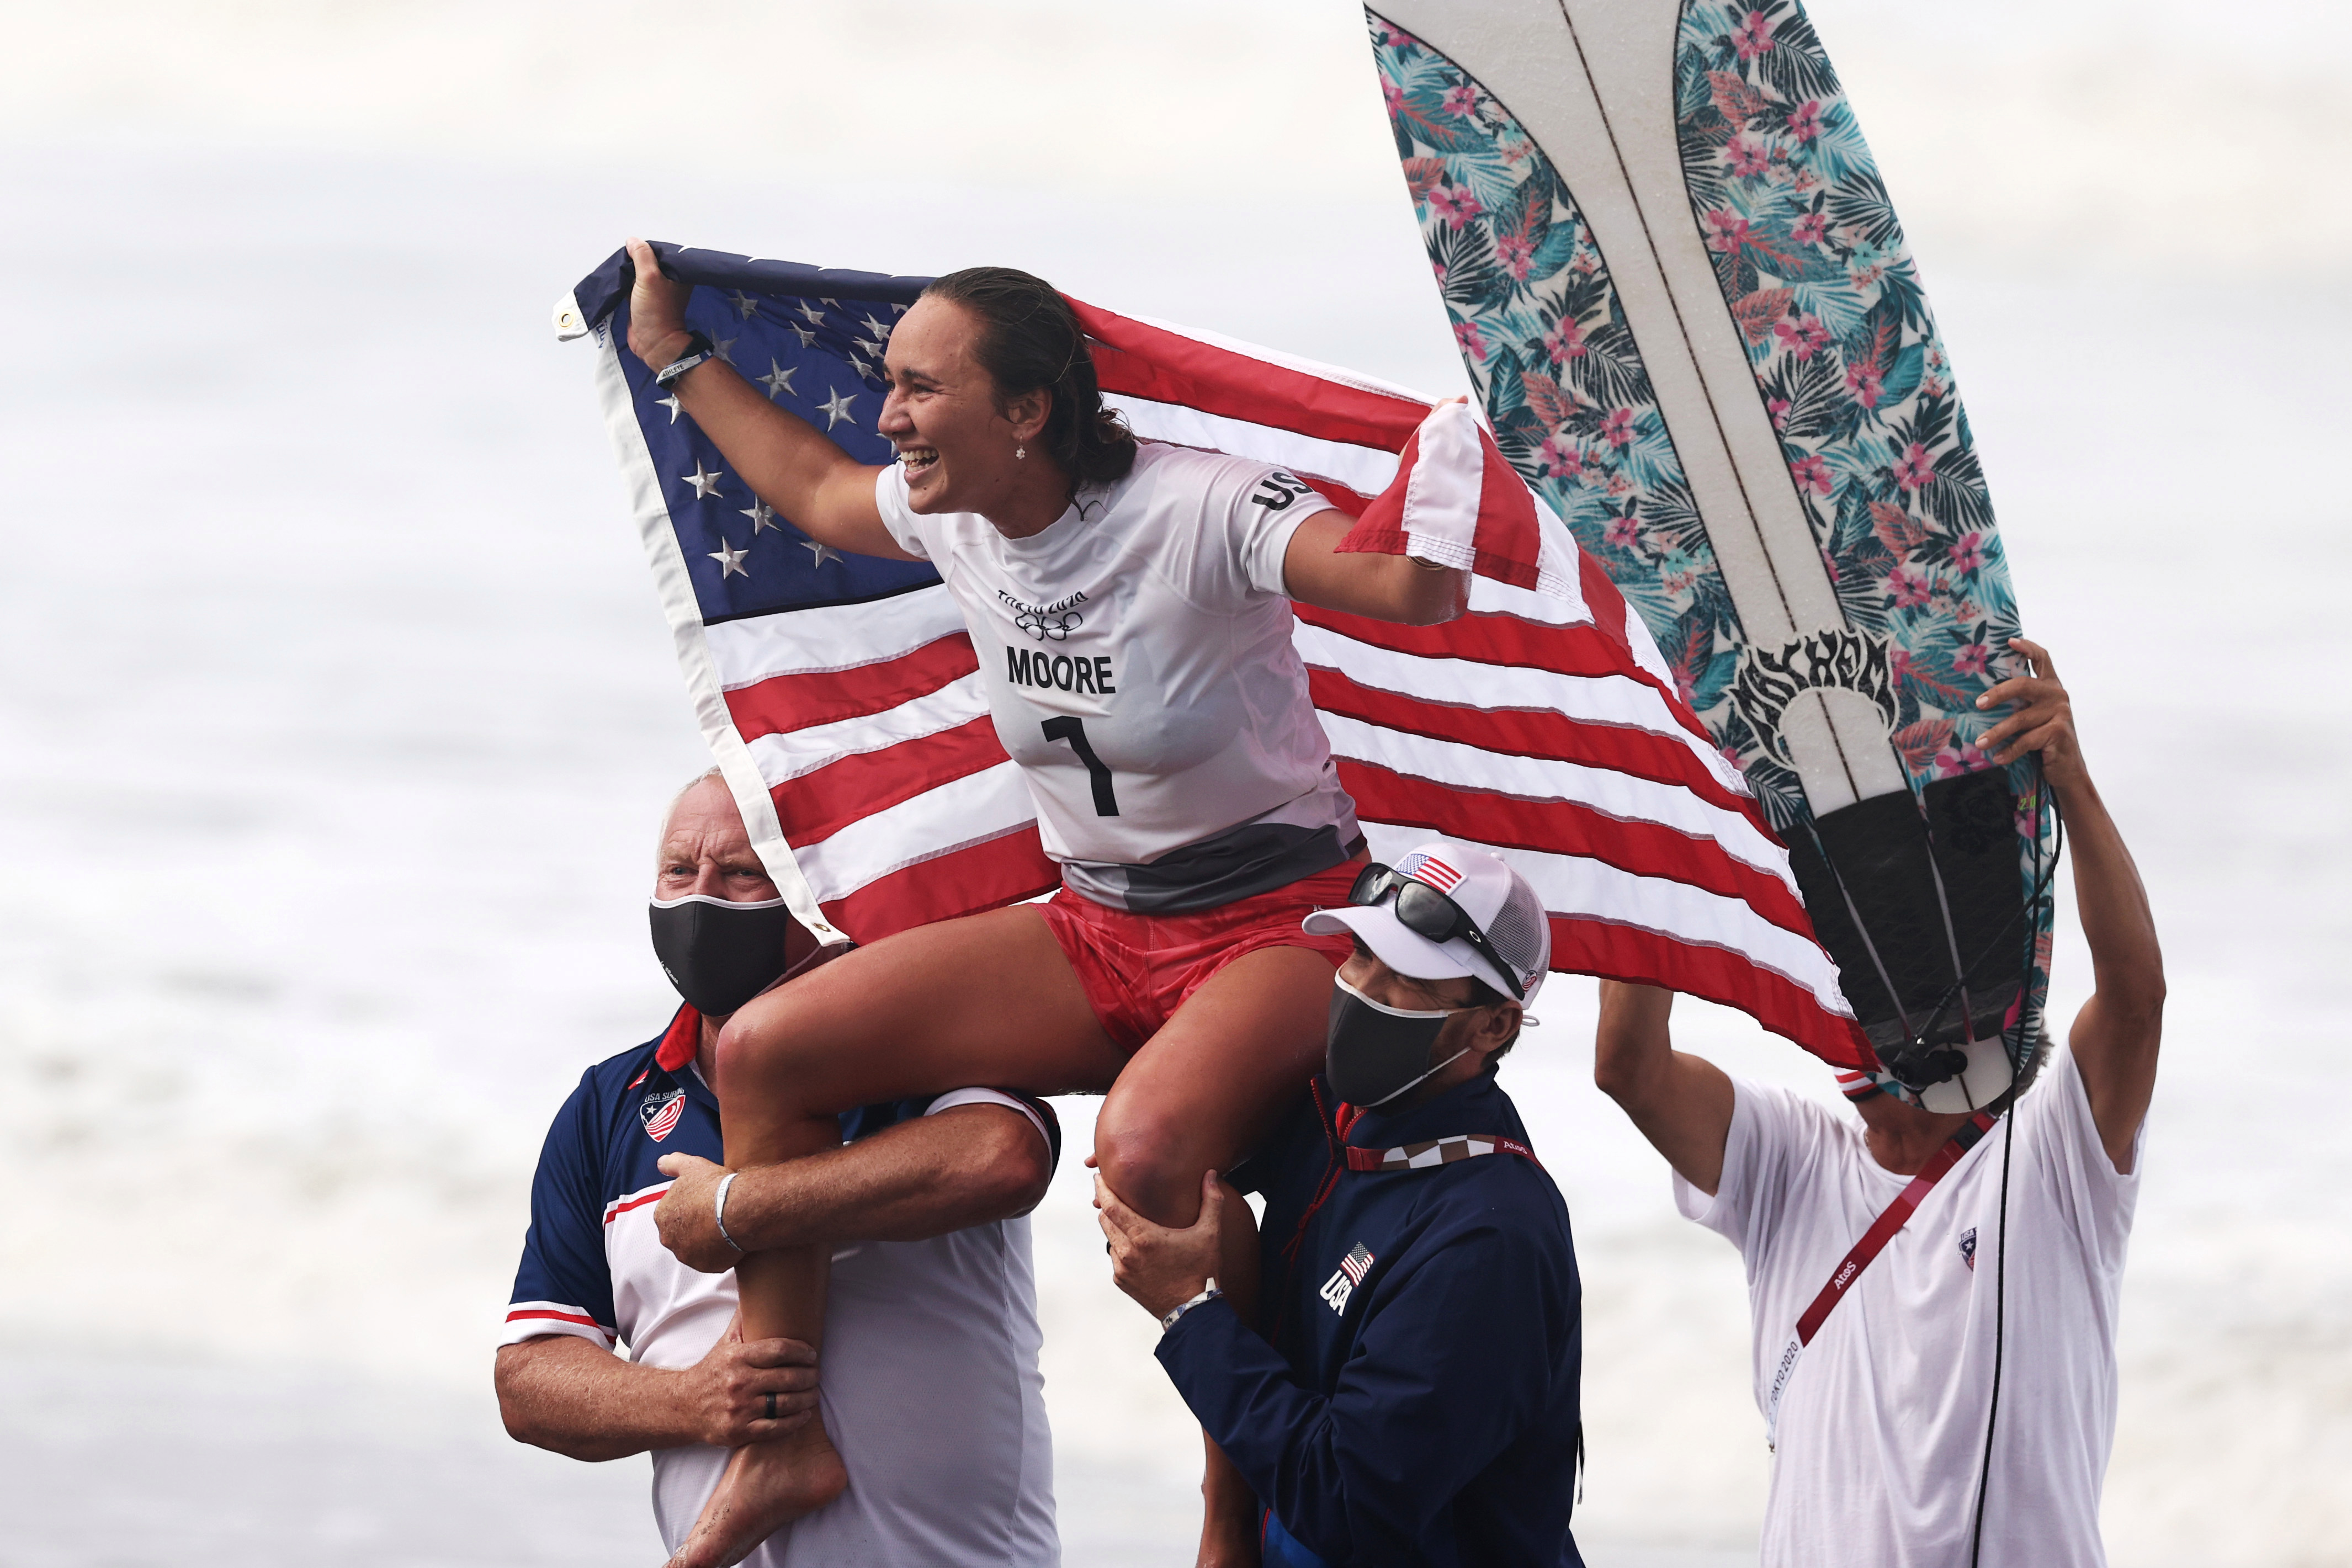 Carissa Moore holding a US Flag